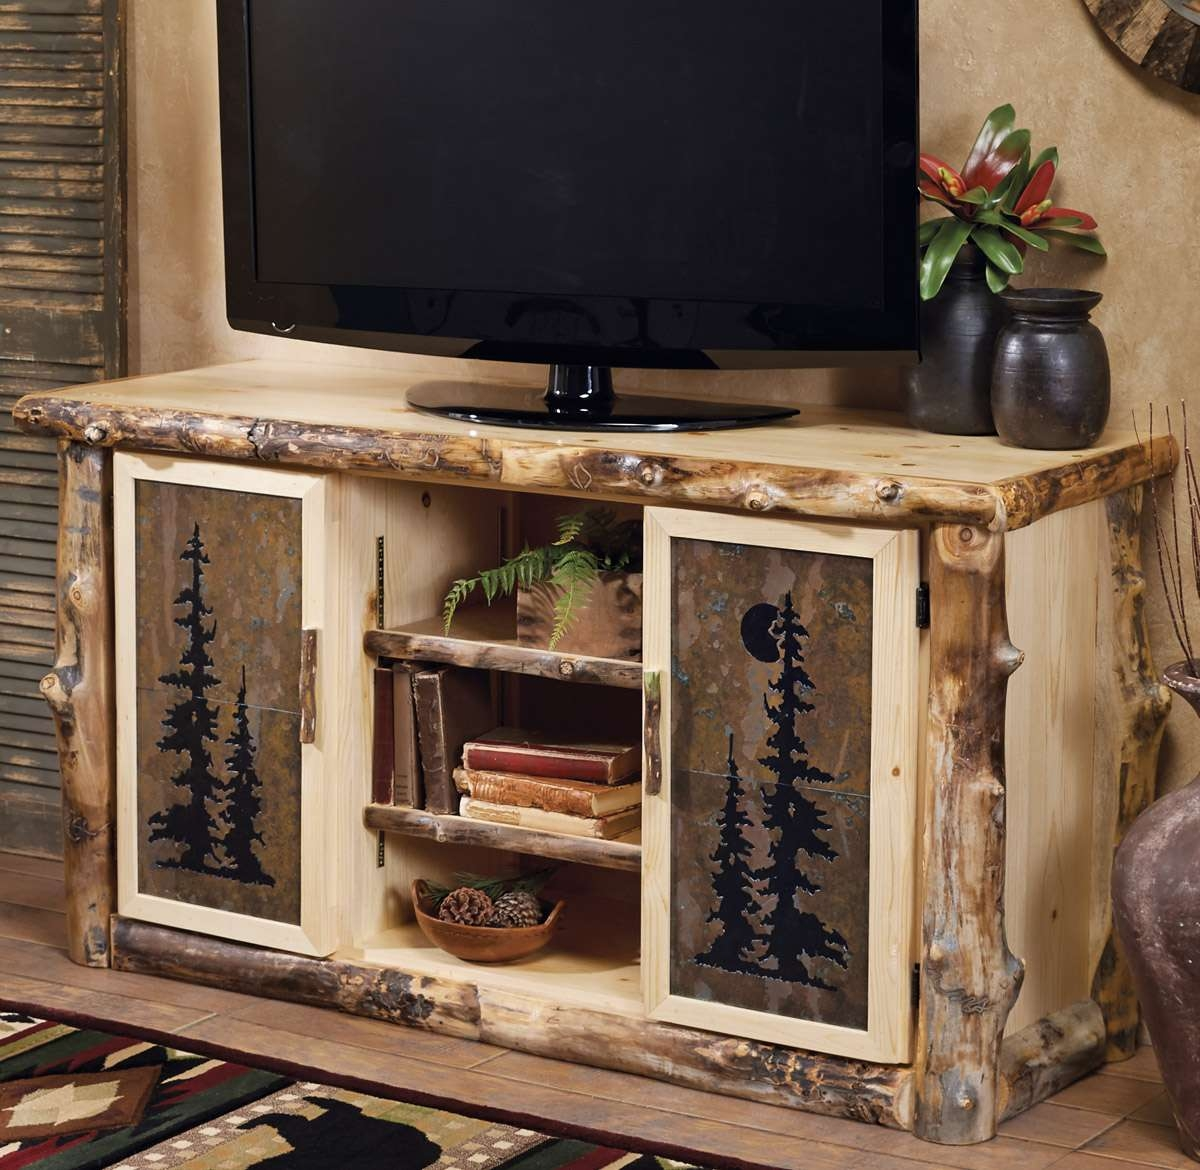 Inspiring Small Tv Stand Together With Small Rustic Tv Stand As With Rustic Tv Stands (View 9 of 20)